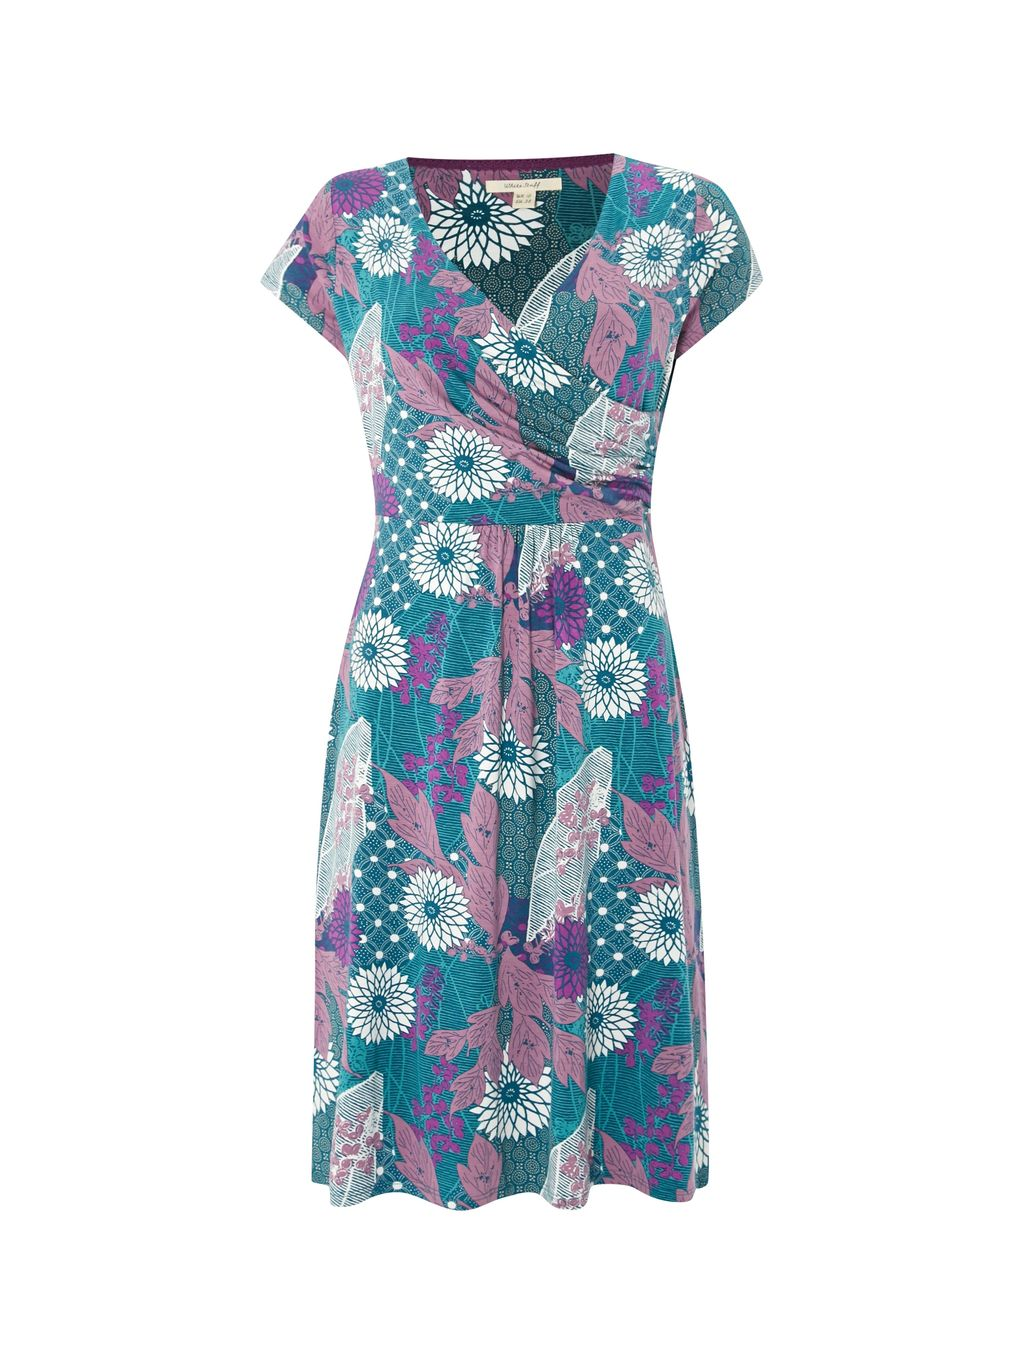 Tea Picker Jersey Dress, Green - style: faux wrap/wrap; neckline: low v-neck; sleeve style: capped; fit: fitted at waist; secondary colour: magenta; predominant colour: denim; occasions: casual; length: just above the knee; fibres: viscose/rayon - stretch; sleeve length: short sleeve; pattern type: fabric; pattern size: light/subtle; pattern: florals; texture group: jersey - stretchy/drapey; season: s/s 2016; wardrobe: highlight